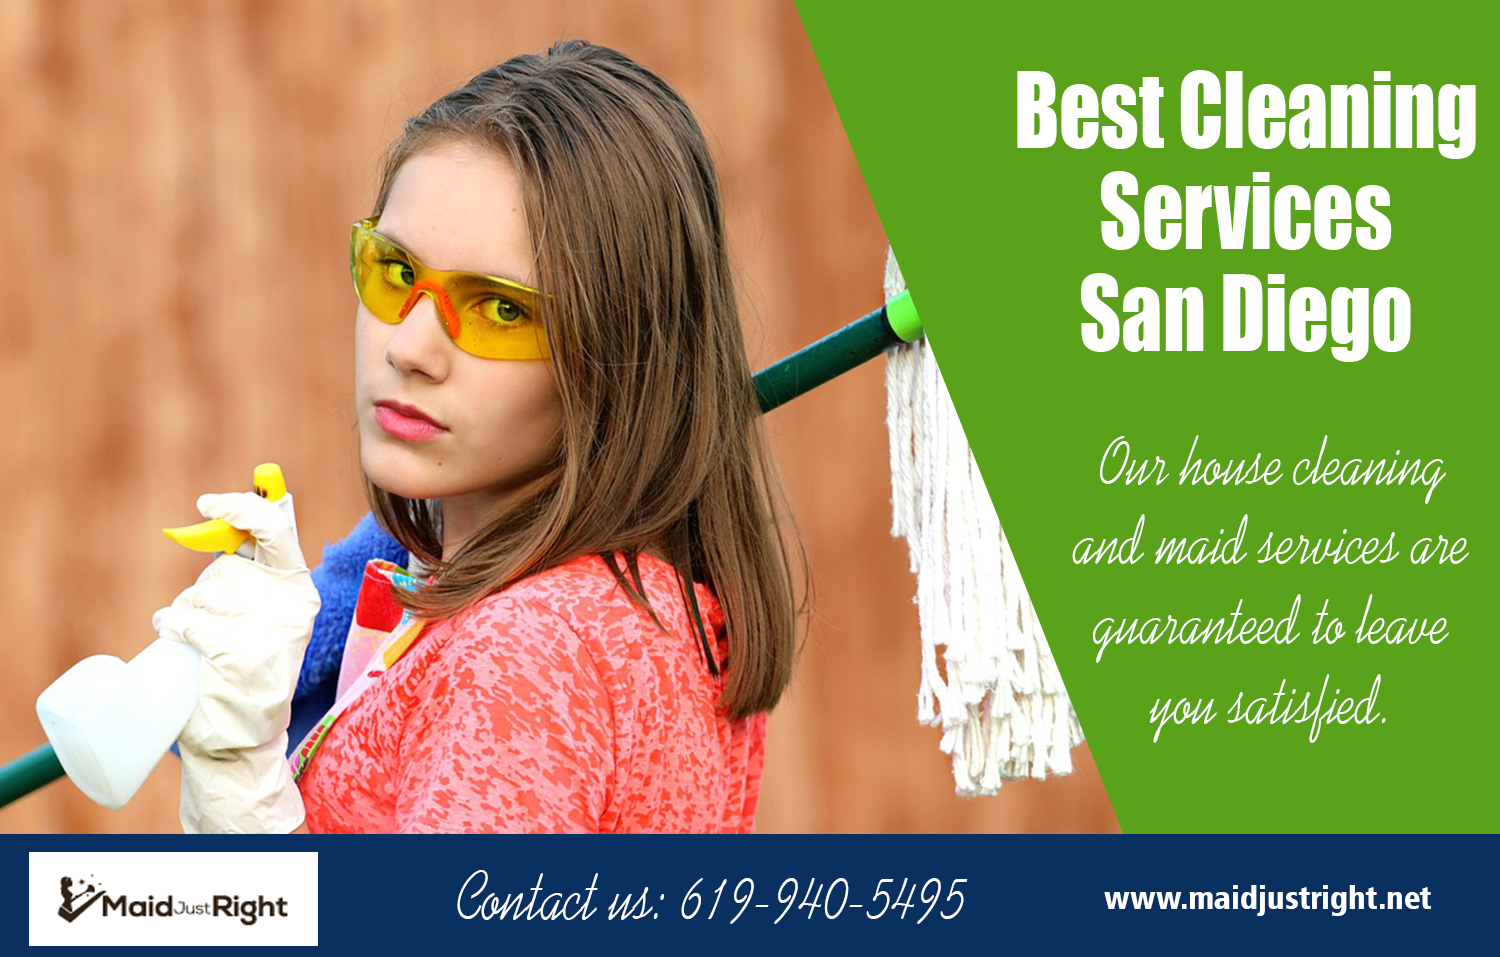 Best Cleaning Services San Diego | Call Us - 619-940-5495 | maidjustright.net